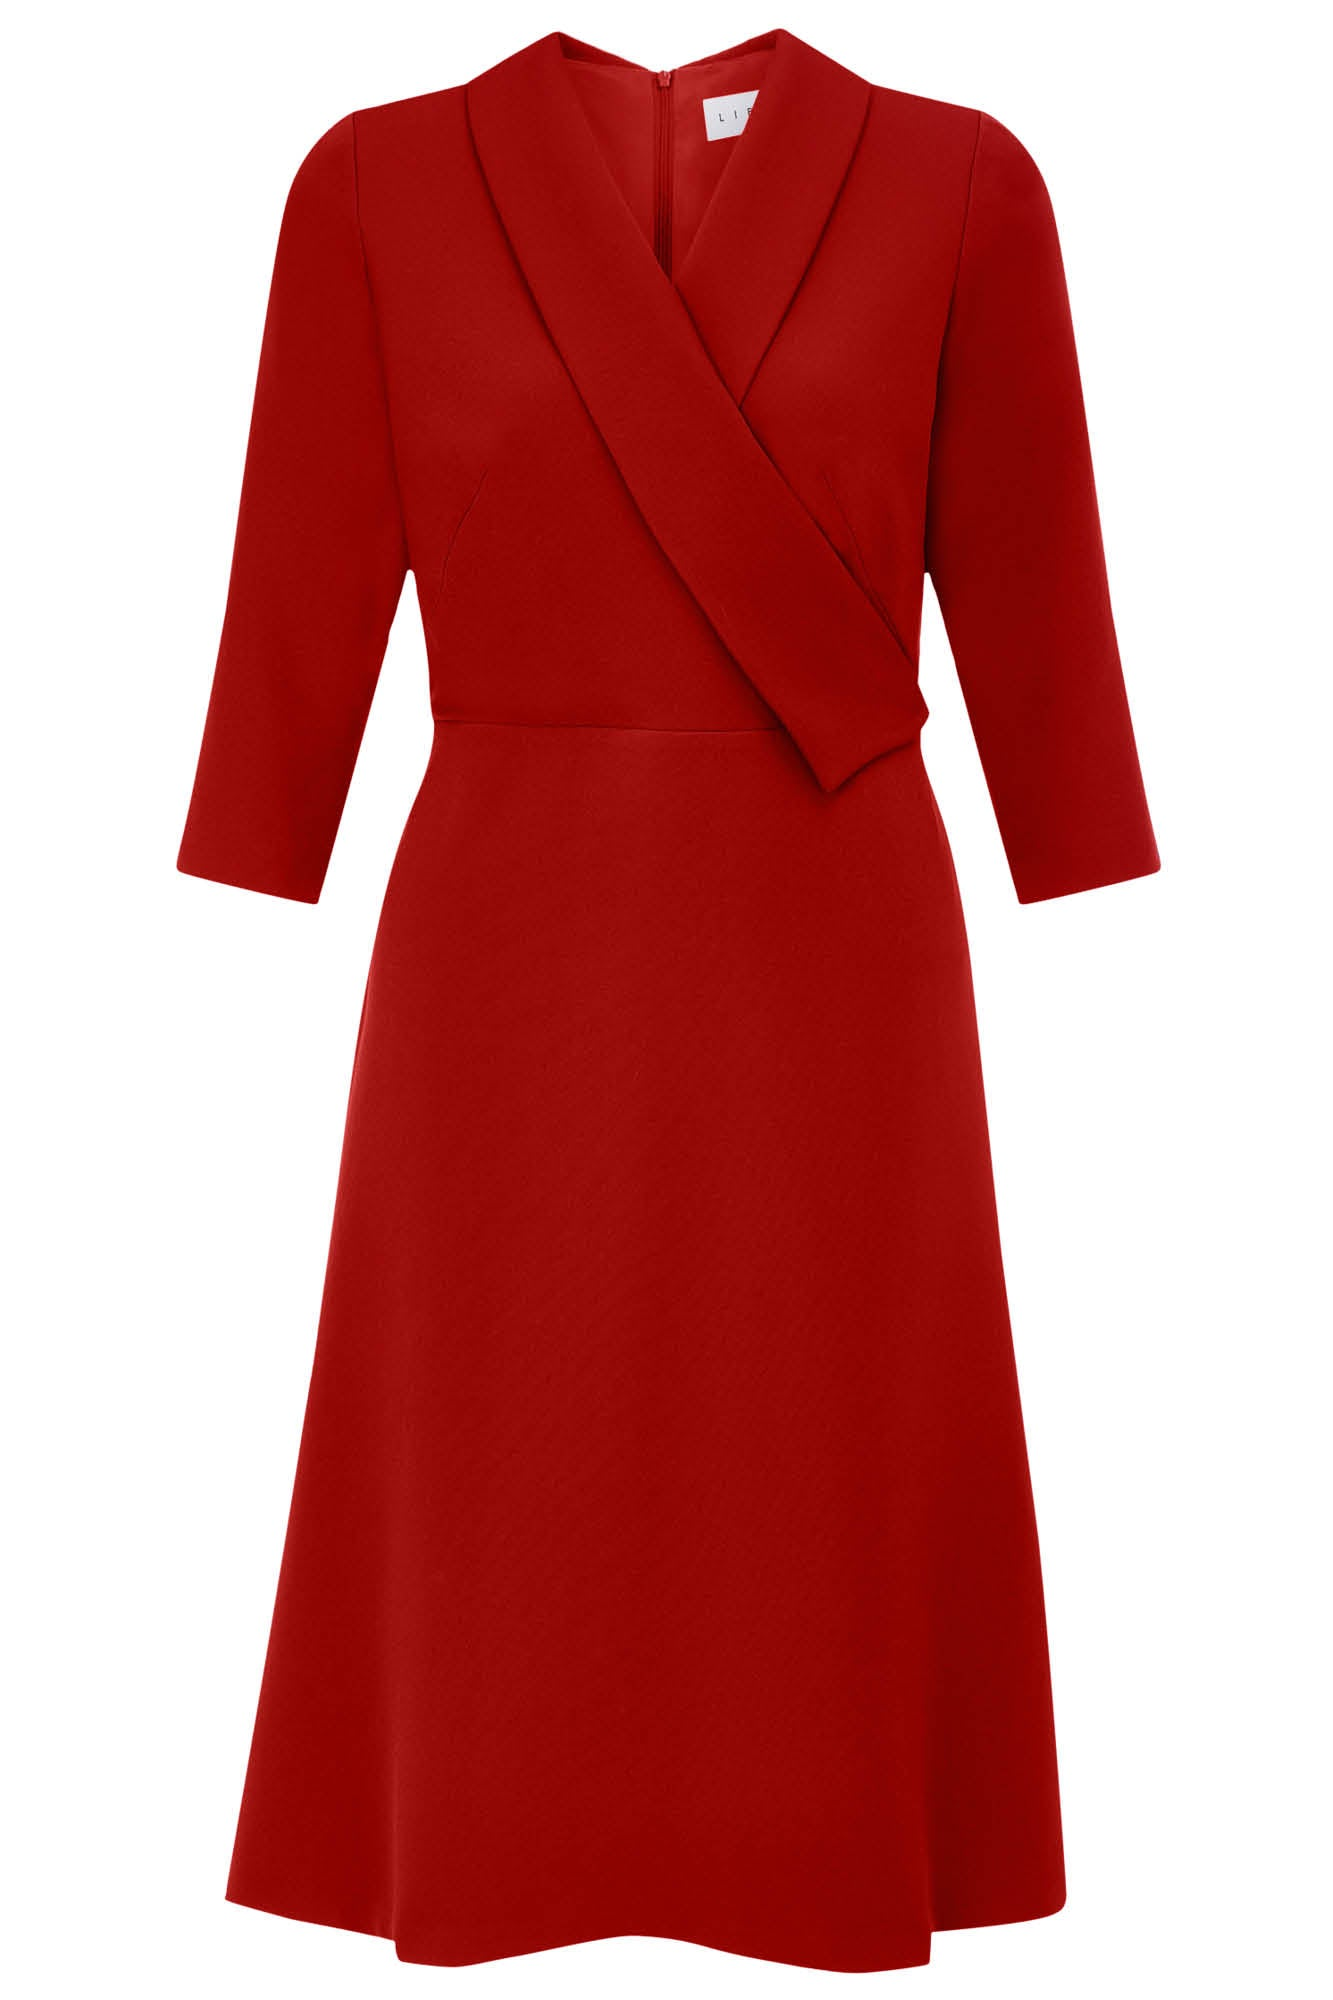 Farringdon Red Dress